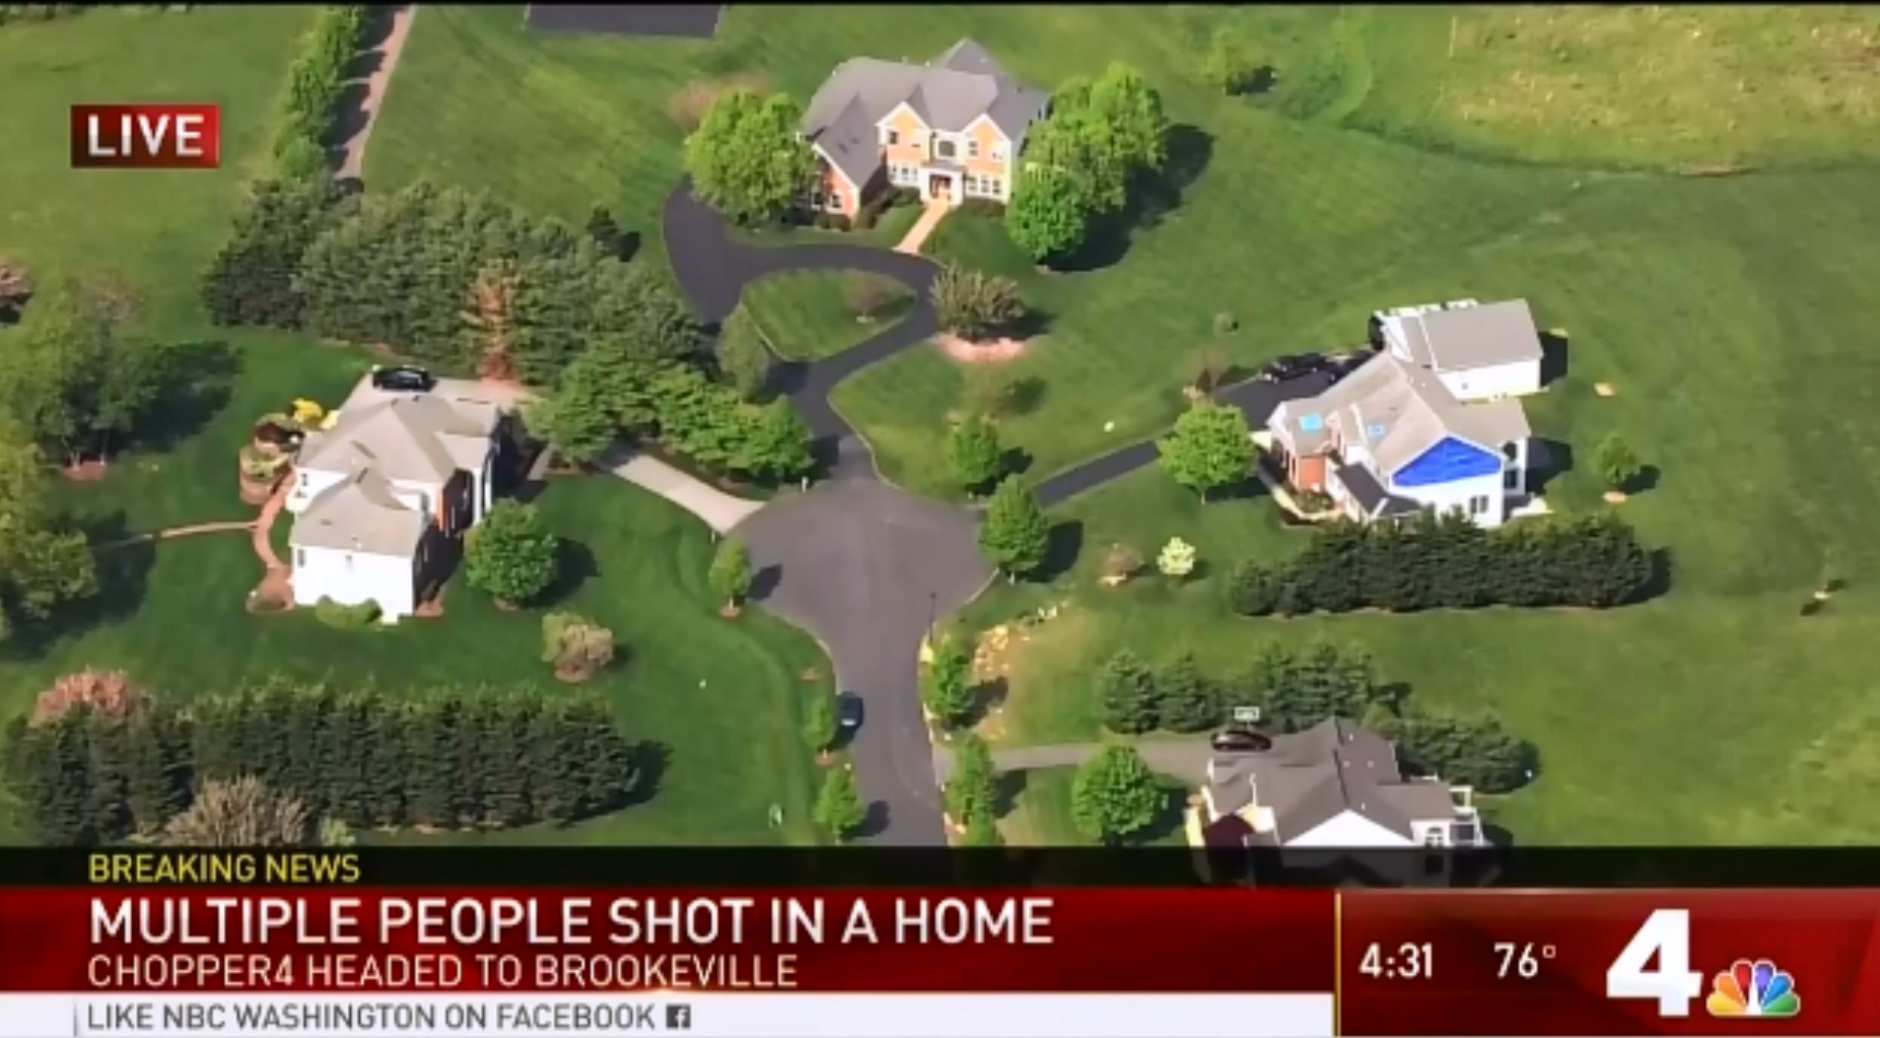 Officers rushed to the22000 block of Brown Farm Way in Brookeville, Maryland, (Courtesy NBC Washington)